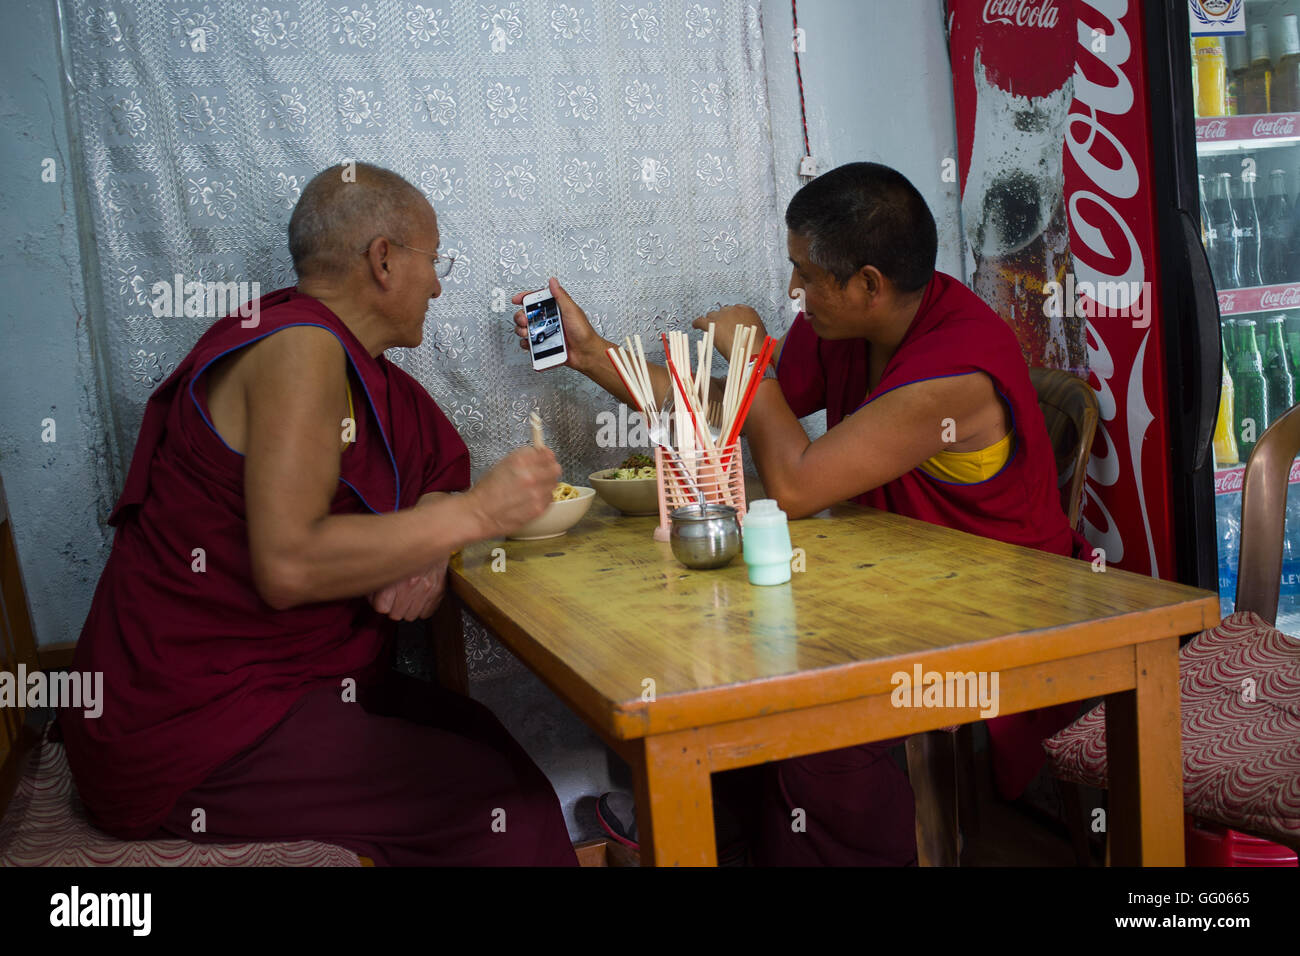 Dharamsala, Himachal Pradesh, India. 14th May, 2013. File Image - Two Buddhist monks watching a car model on the - Stock Image